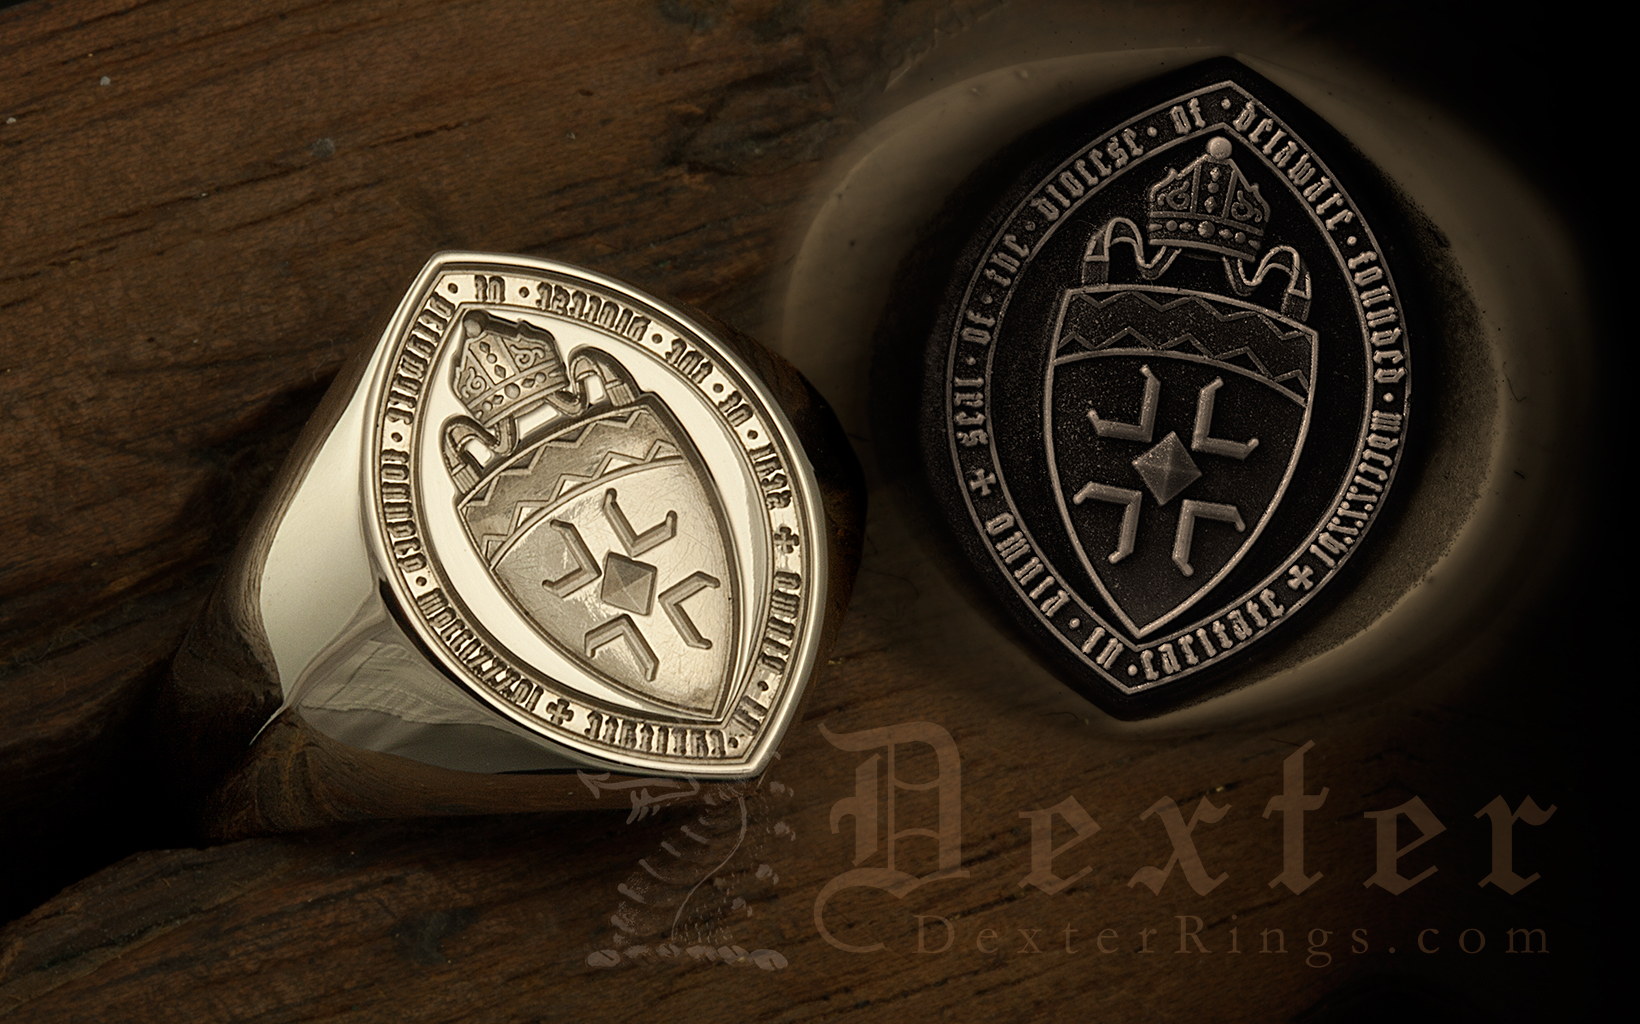 Bishop of Delaware Custom Bespoke Seal Ring